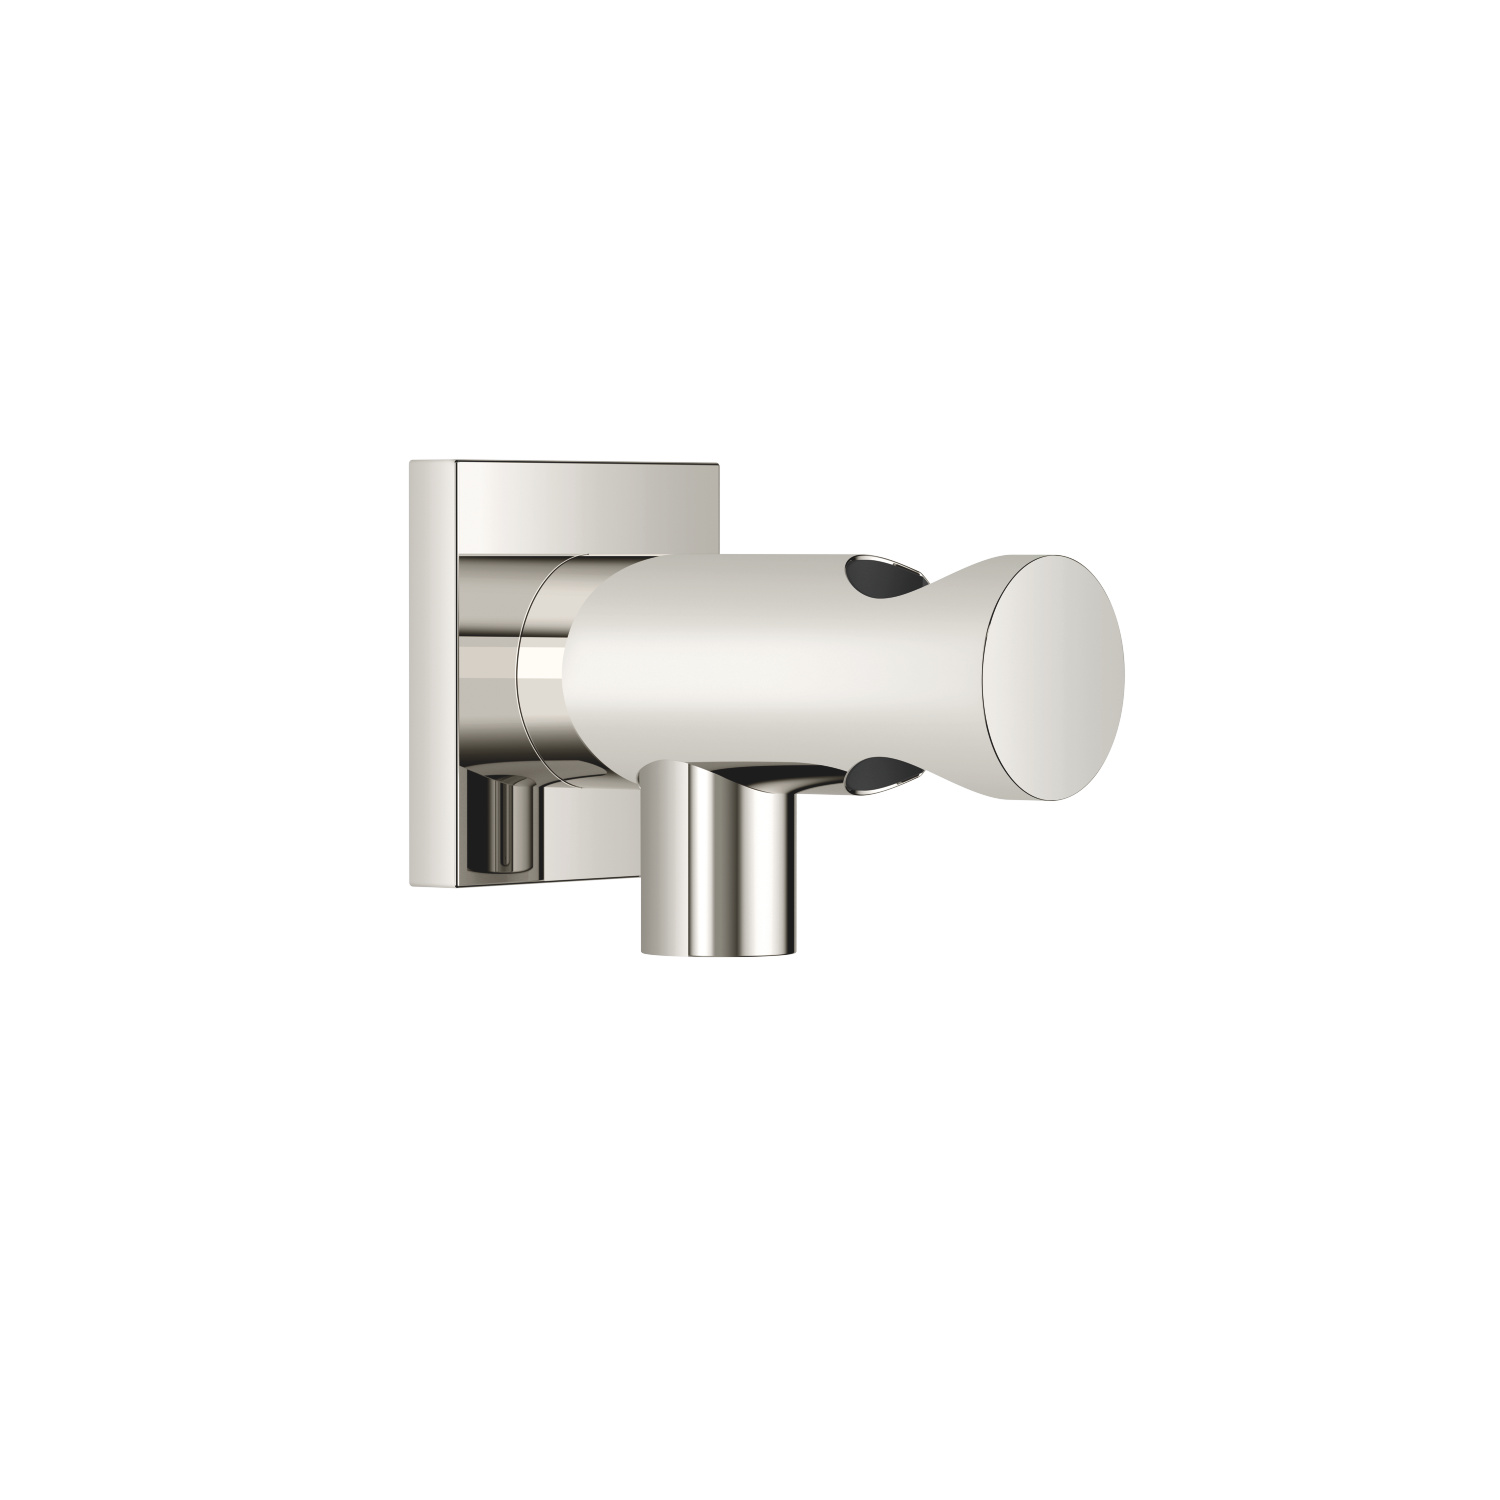 Wall elbow with integrated wall bracket - platinum